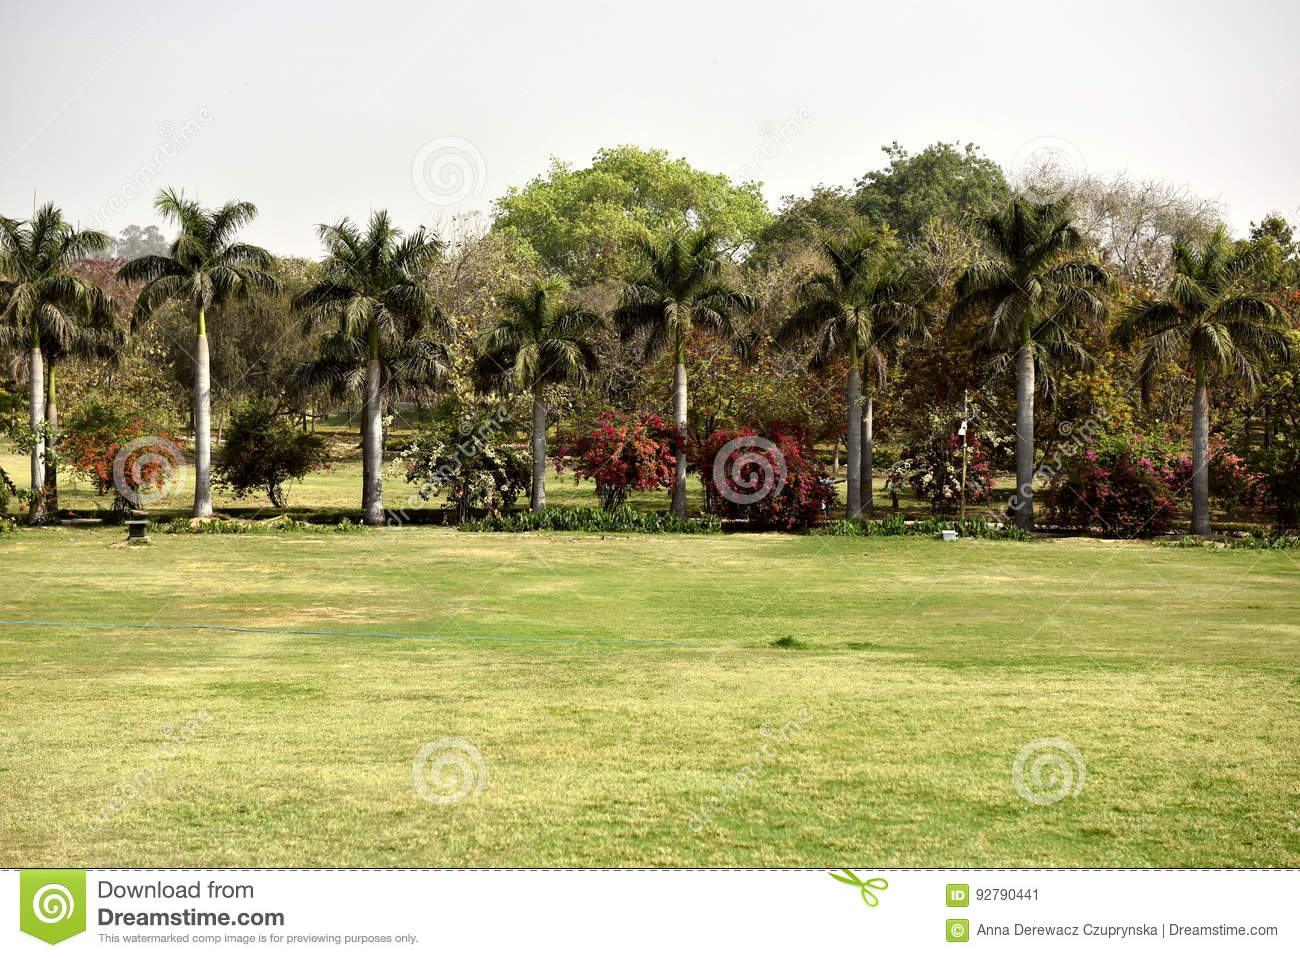 Garden in India stock image. Image of place, palms, ghat - 92790441